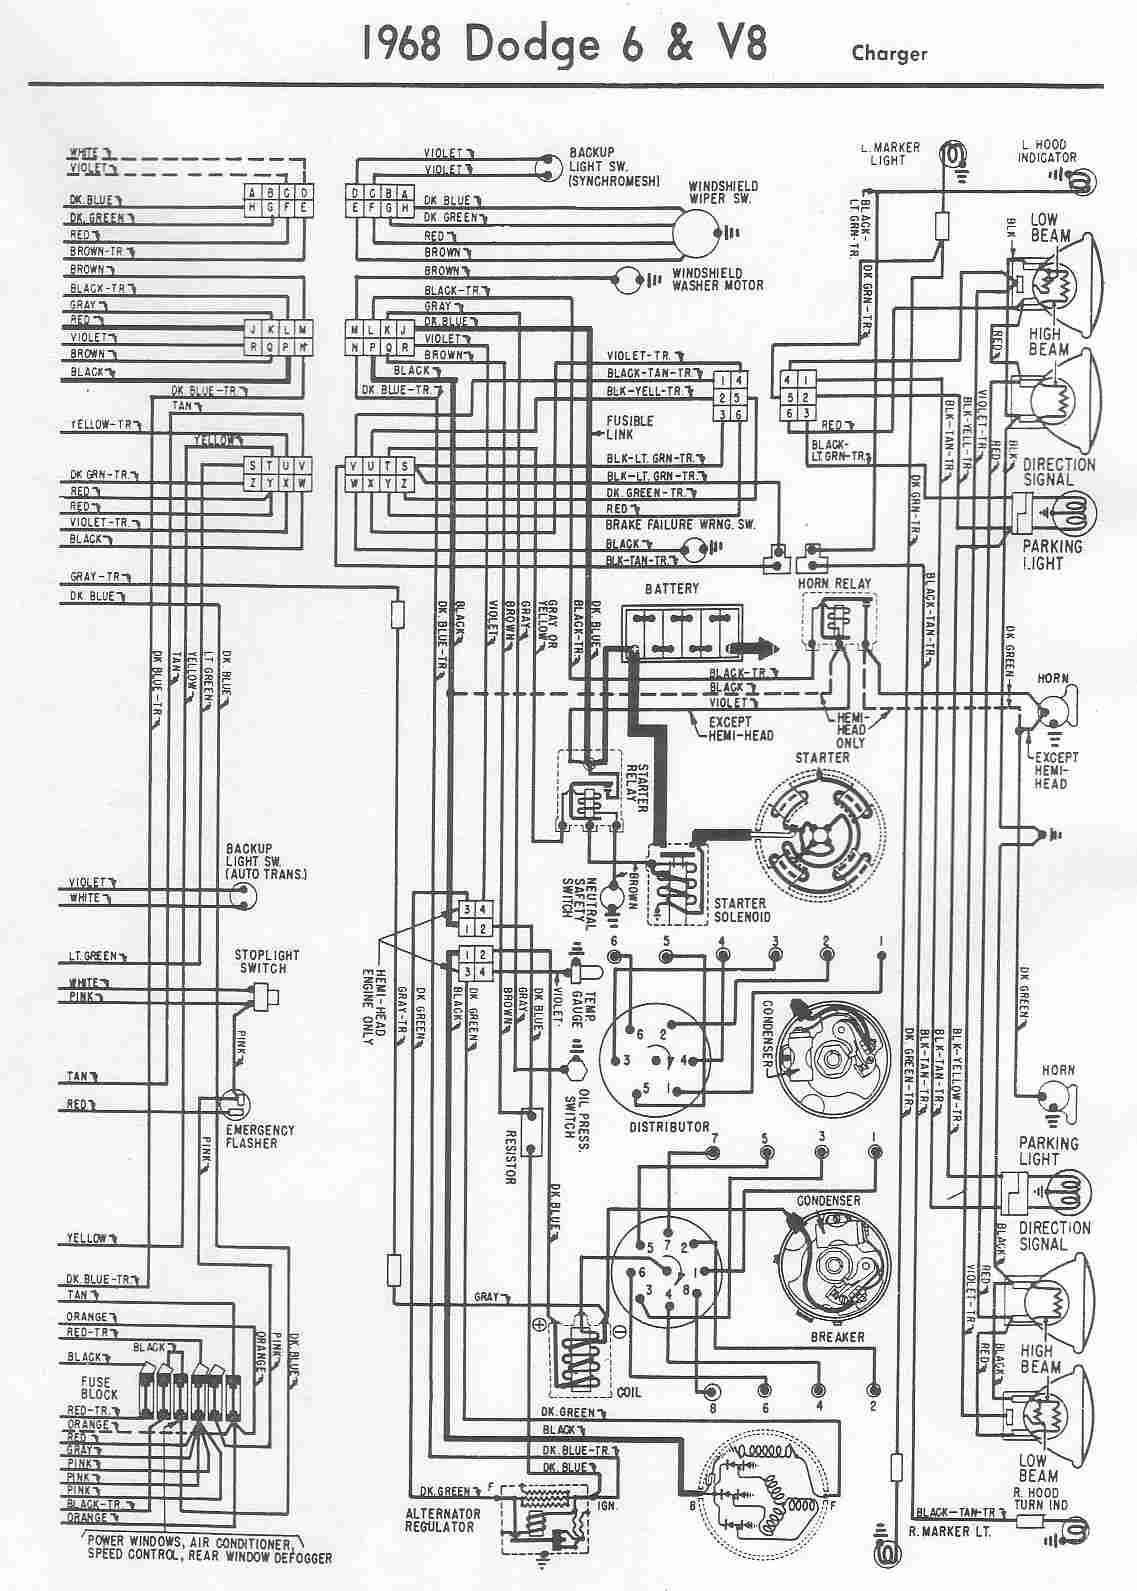 1966 Charger Wiring Diagram Manual Diy Enthusiasts Diagrams Chevy Truck Dodge Car Manuals Pdf Fault Codes Rh Automotive Net Schematic Chevelle